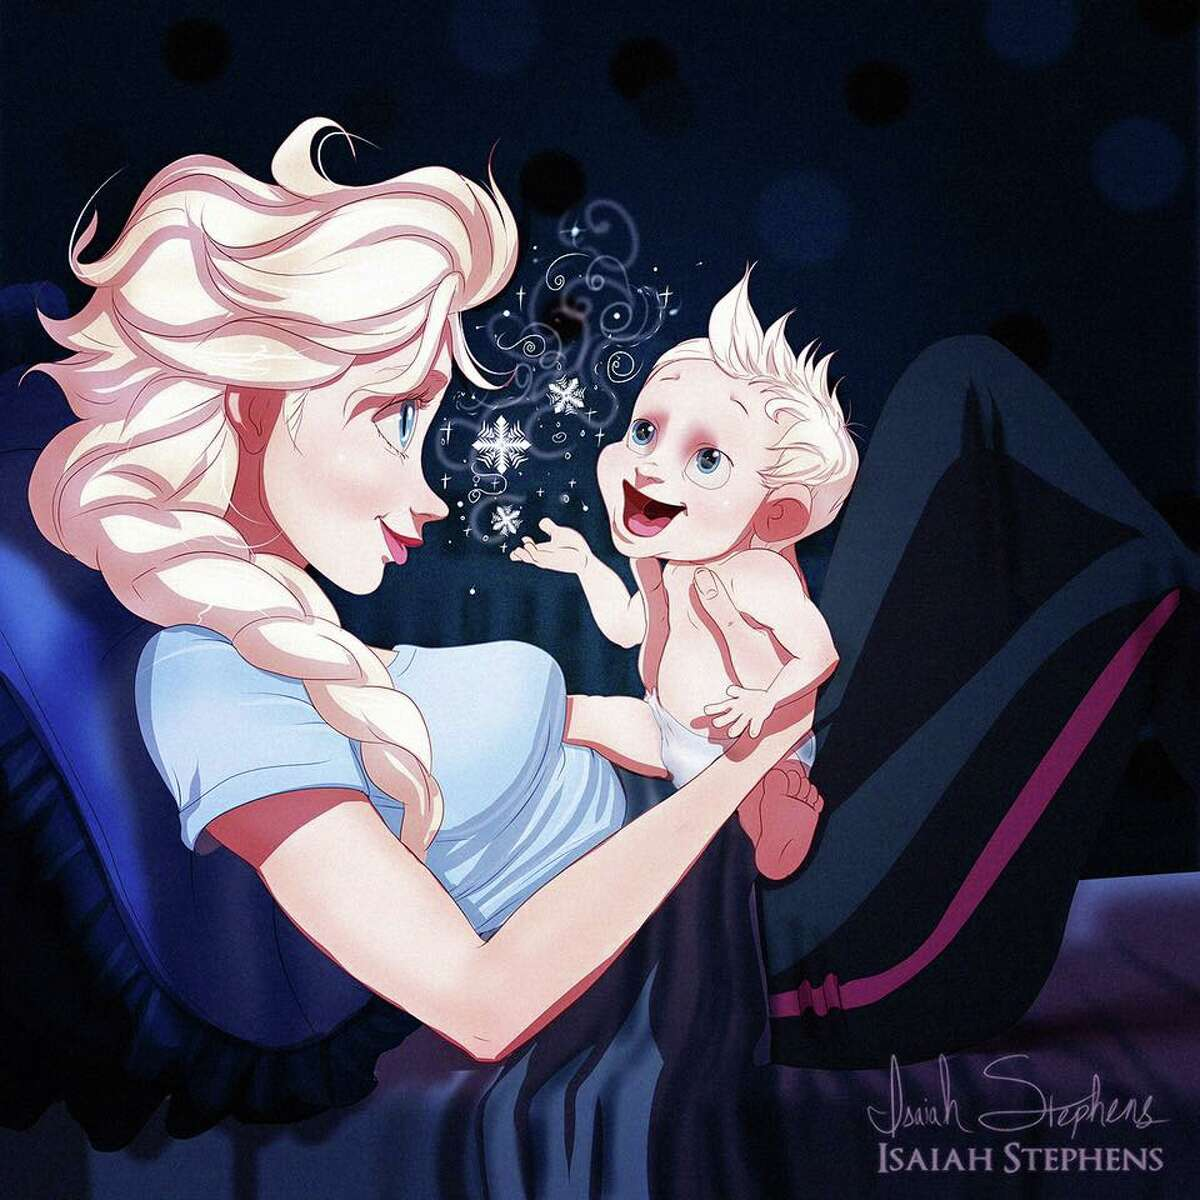 Artist Isaiah Stephens took a new approach to Disney relationships and showed the princesses, and princes, as parents.